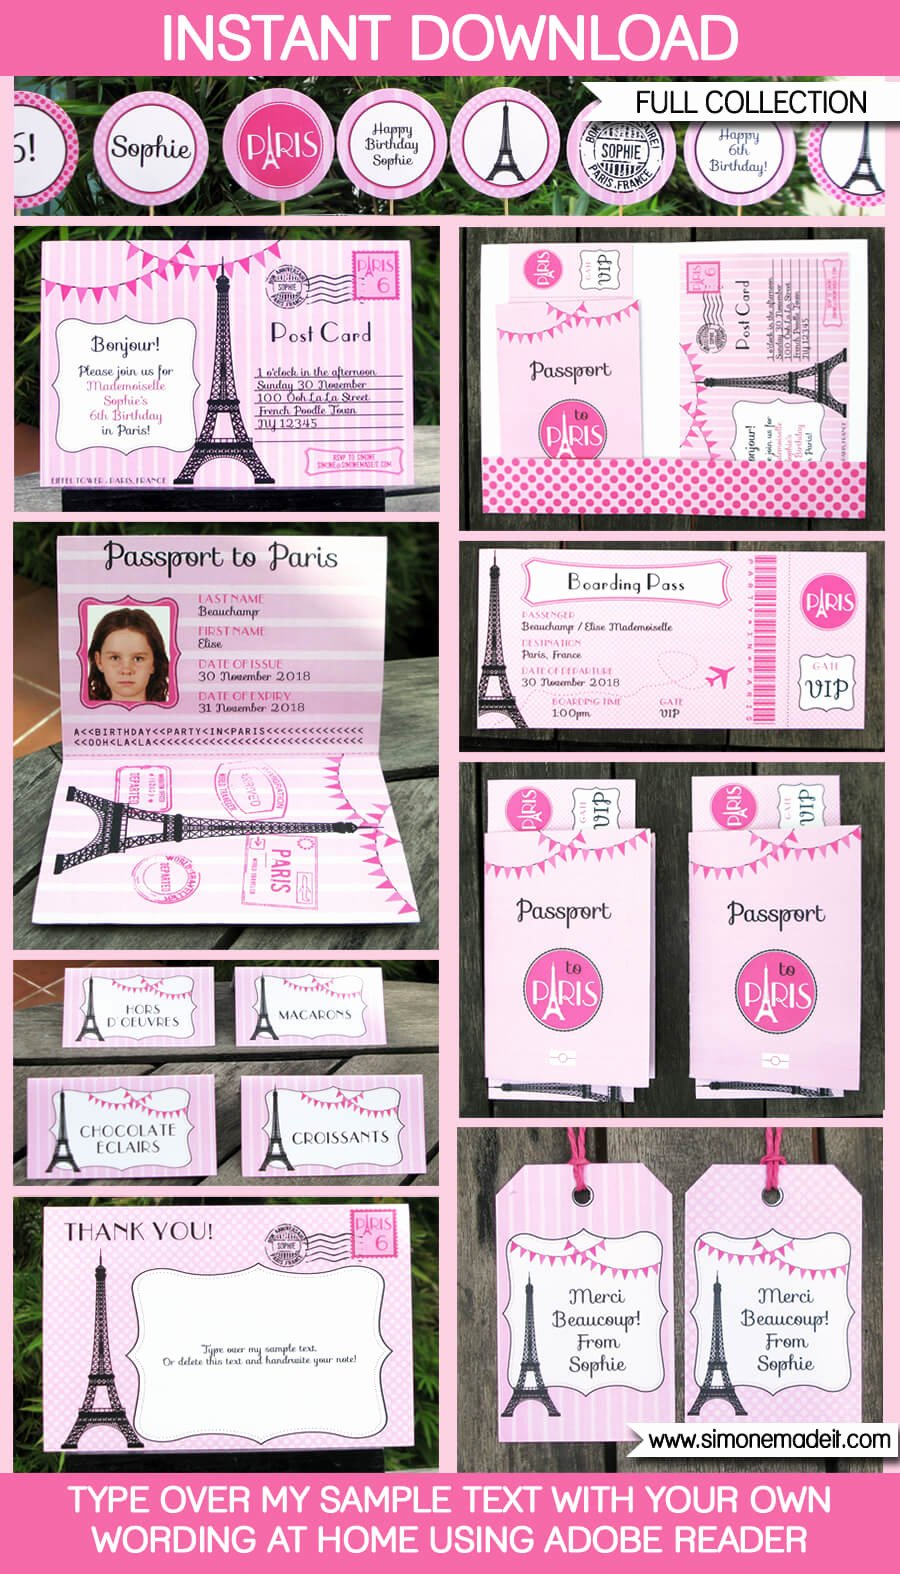 Paris Passport Invitation Template Awesome Paris Party Printables Invitations & Decorations